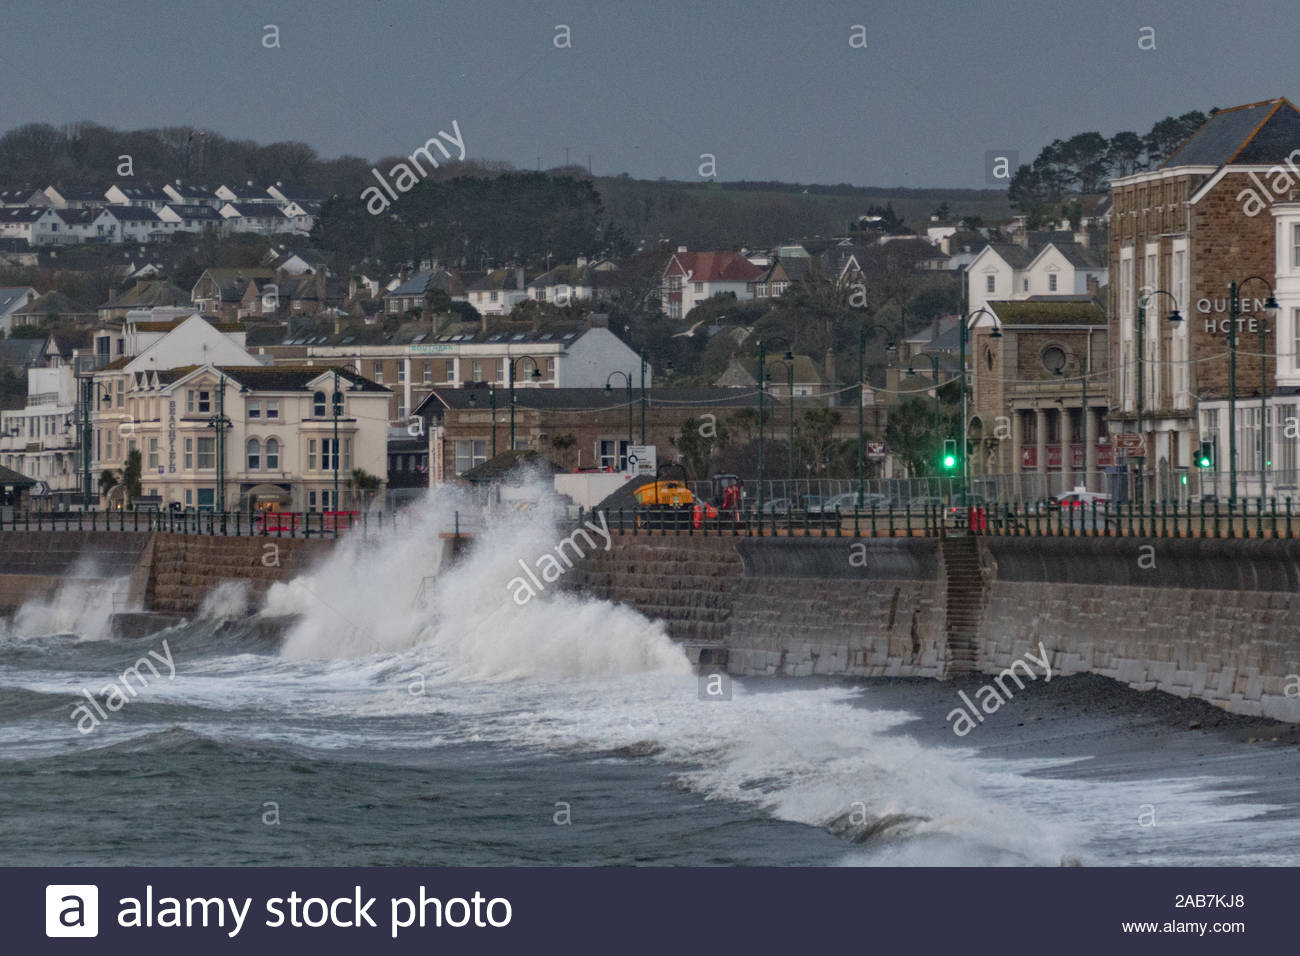 Penzance, Cornwall, UK. 26th November 2019. UK Weather. Winds gusting upto 50 mph are starting to hit the Cornwall coast at Penzance this morning at Storm Sebastian approaches, pushing waves over the seafront at Penzance, even 4 hours after high tide. Credit Simon Maycock / Alamy Live News. Stock Photo